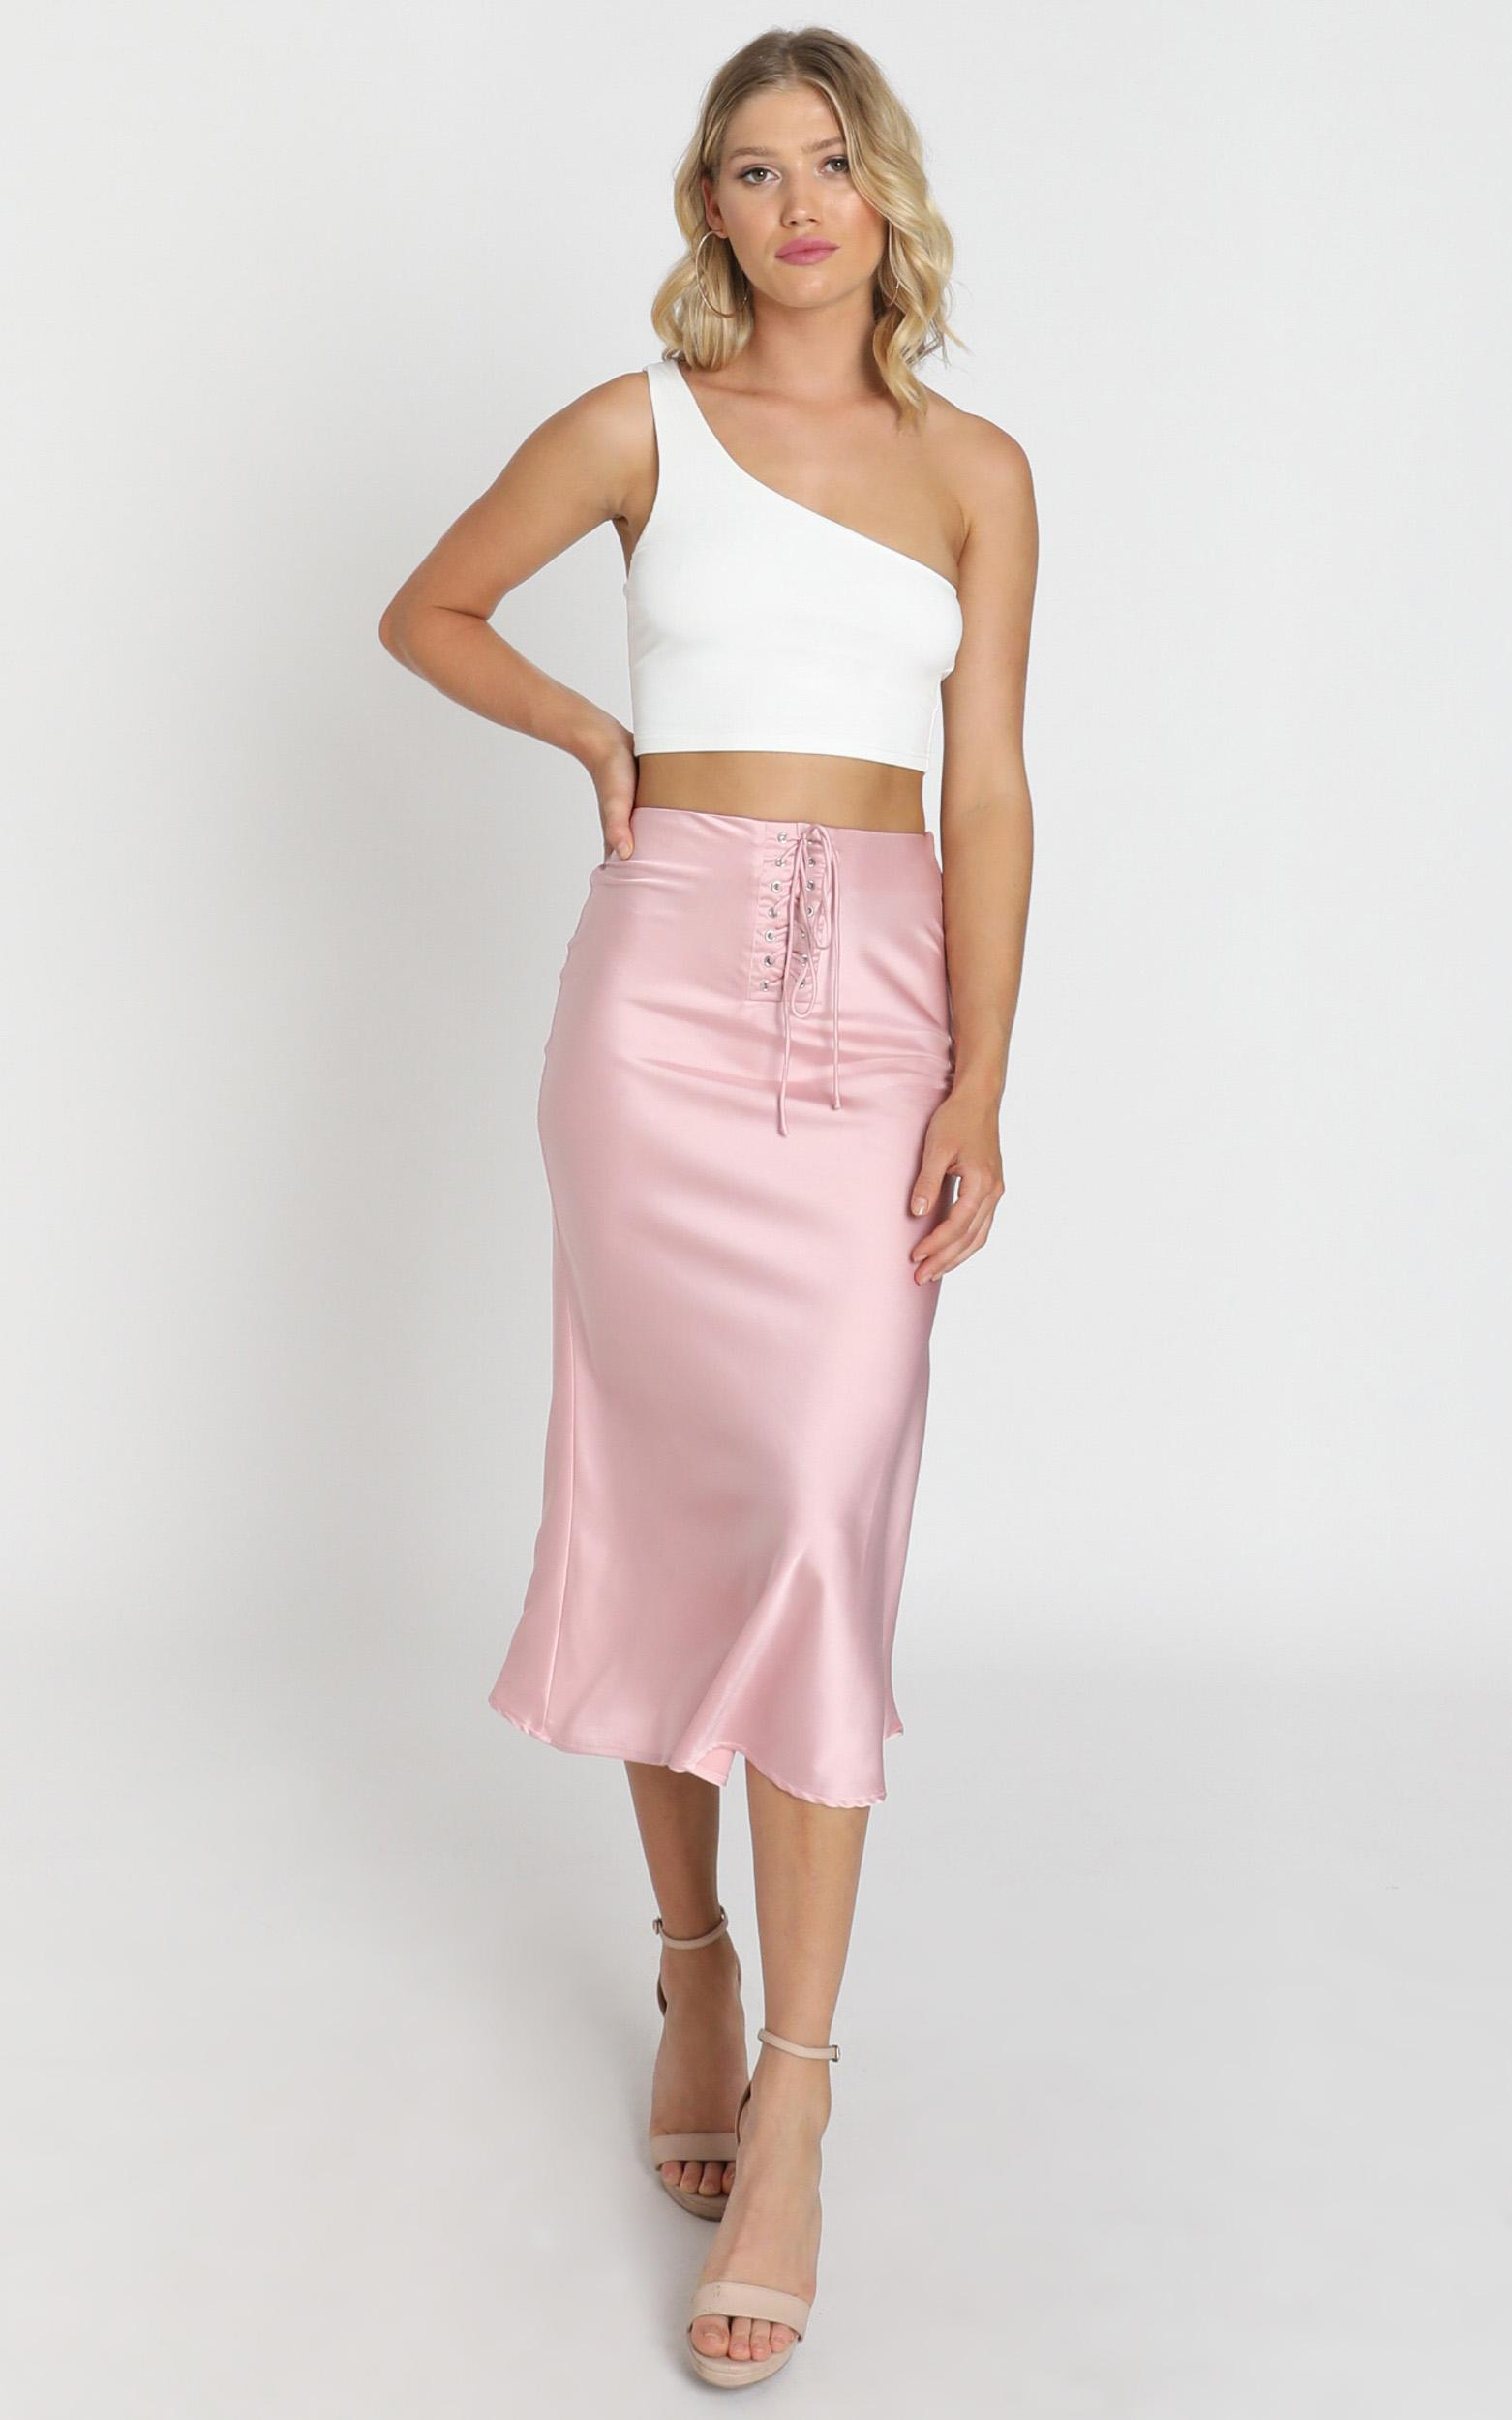 A0094S Winona Skirt in dusty rose satin - 8 (S), Pink, hi-res image number null